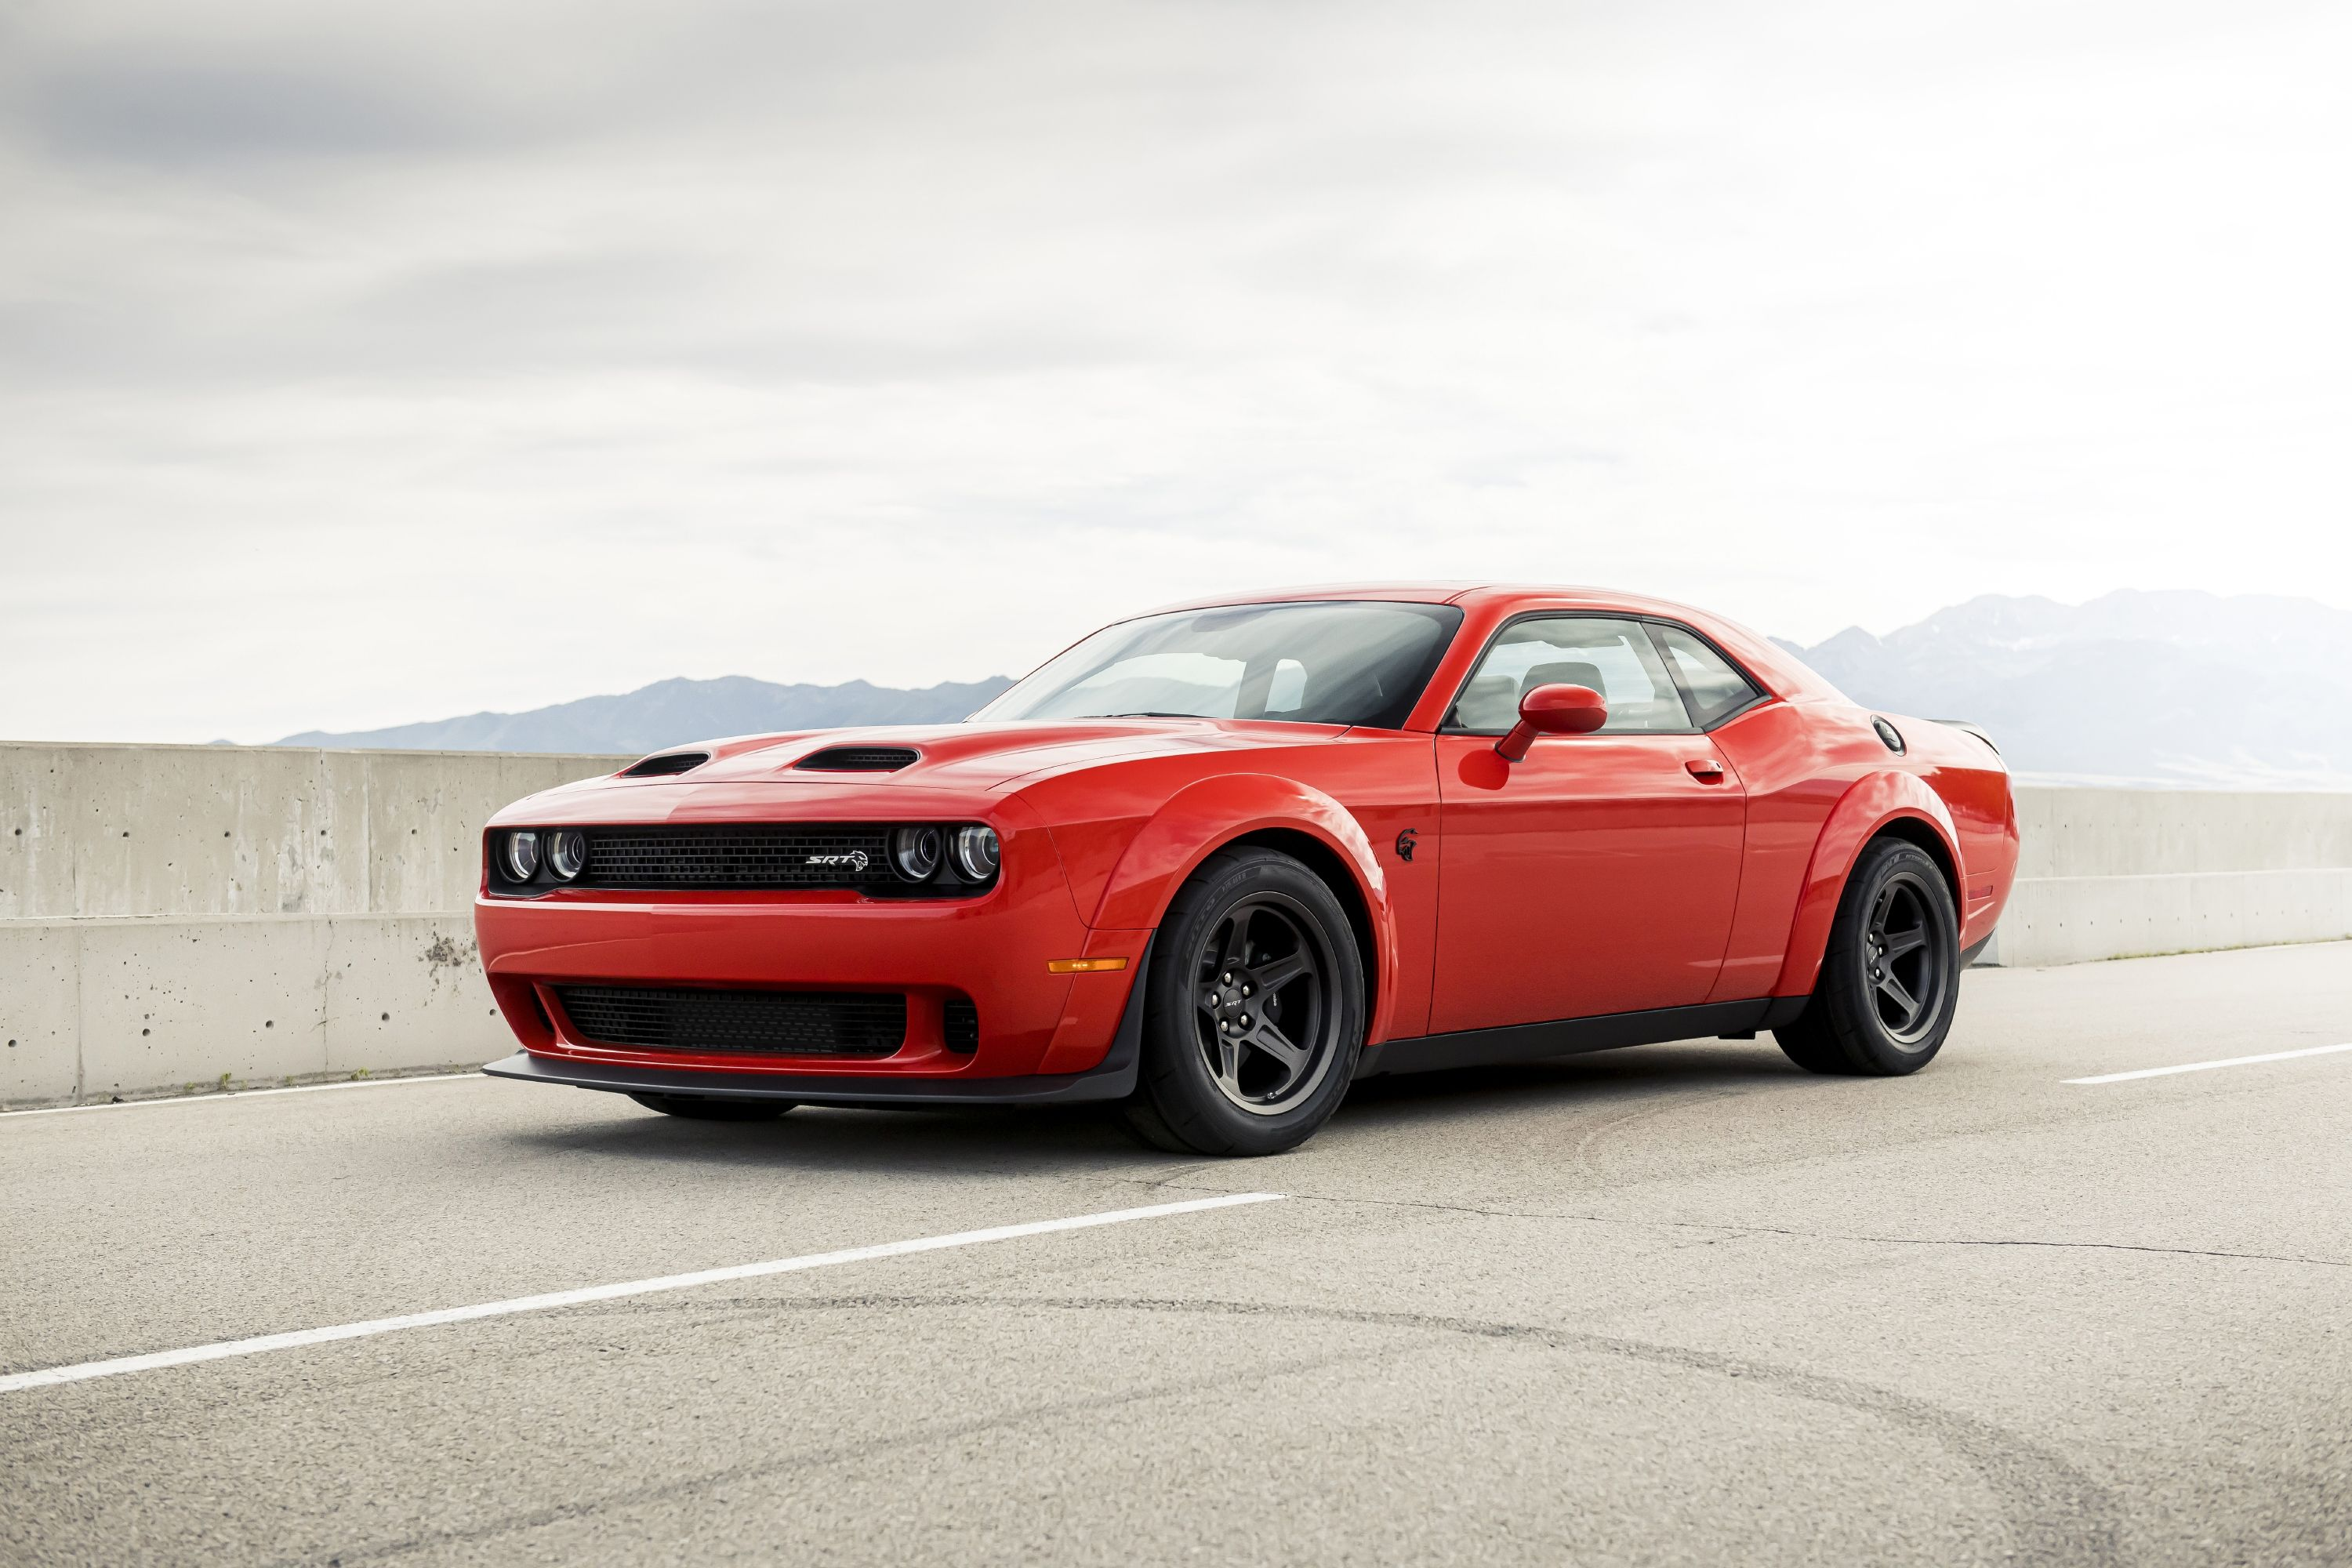 The Dodge Challenger Srt Super Stock Is Almost As Expensive As The Demon Top Speed Challenger Srt Hellcat Dodge Challenger Dodge Challenger Srt Hellcat